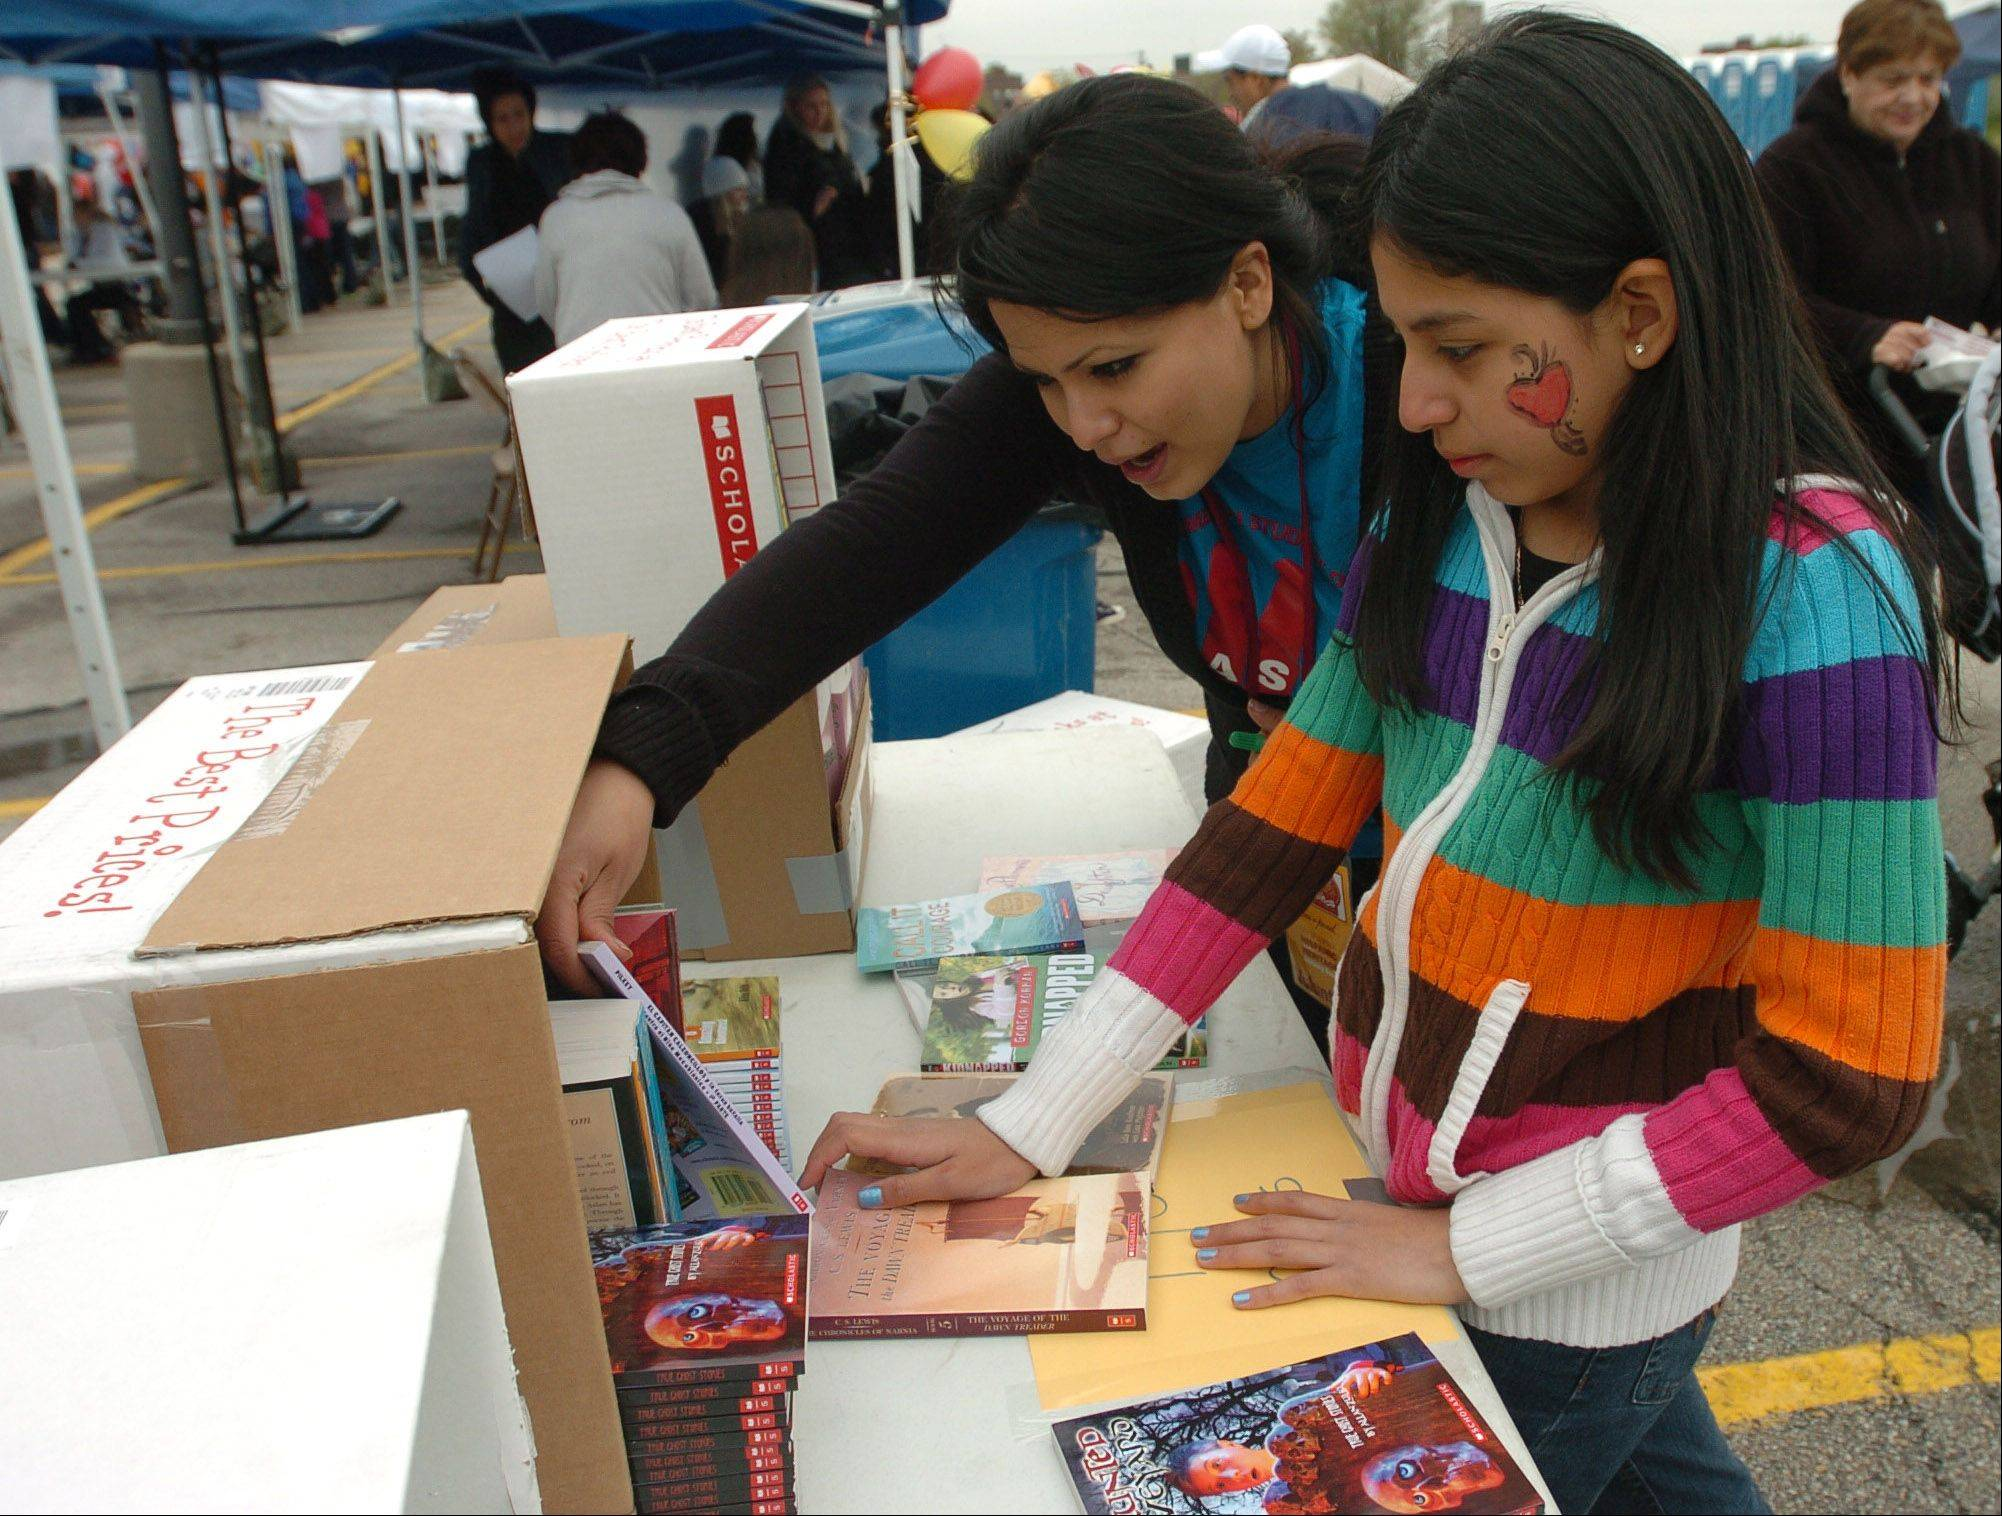 Children, 'Books and Libros' the focus at Aurora festival